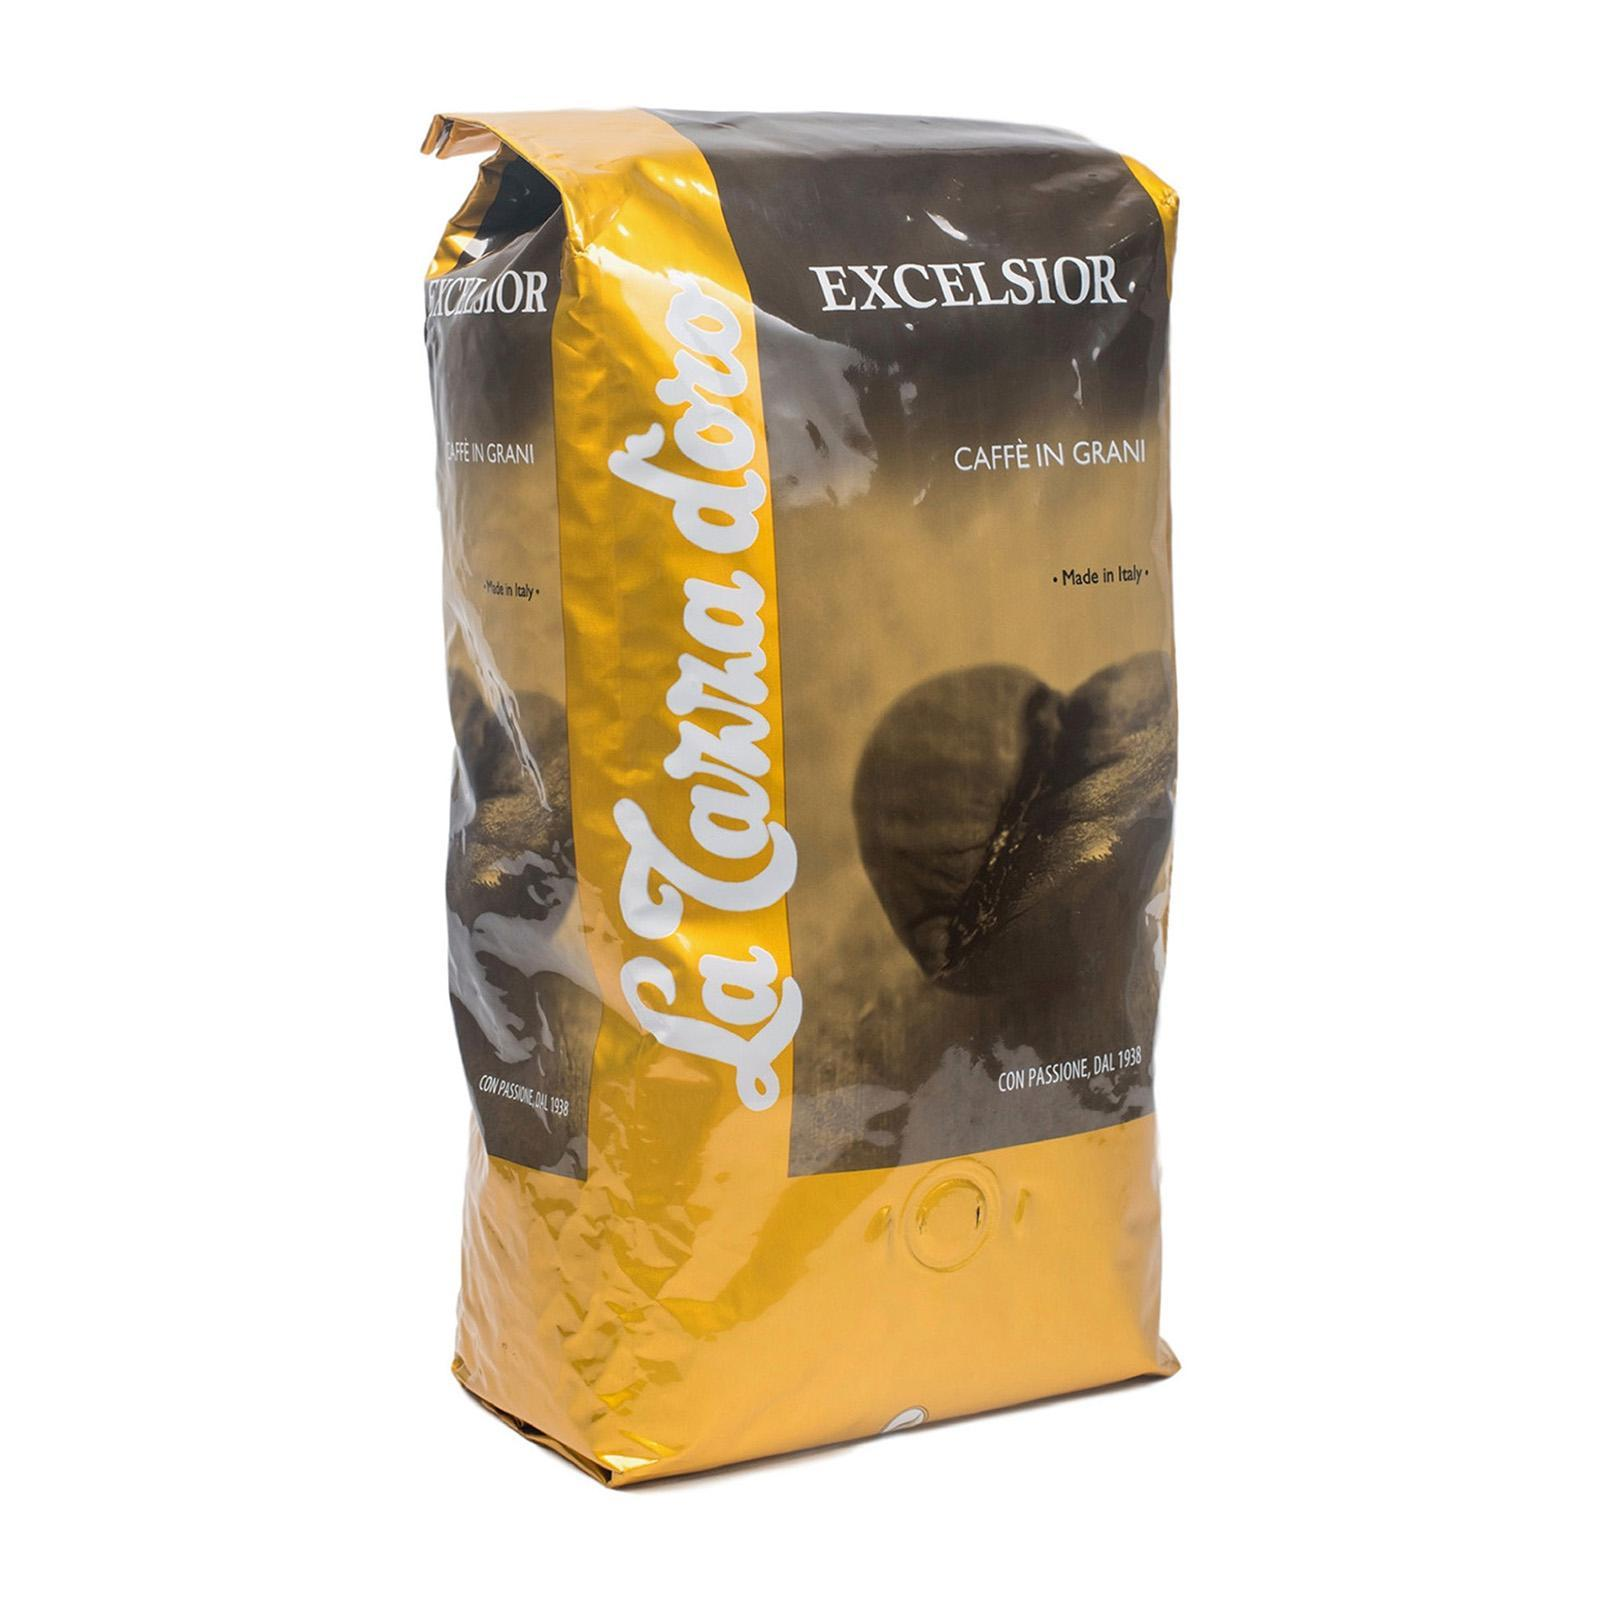 Purchase La Tazza D Oro Excelsior Premium Espresso Whole Beans 1Kg Online